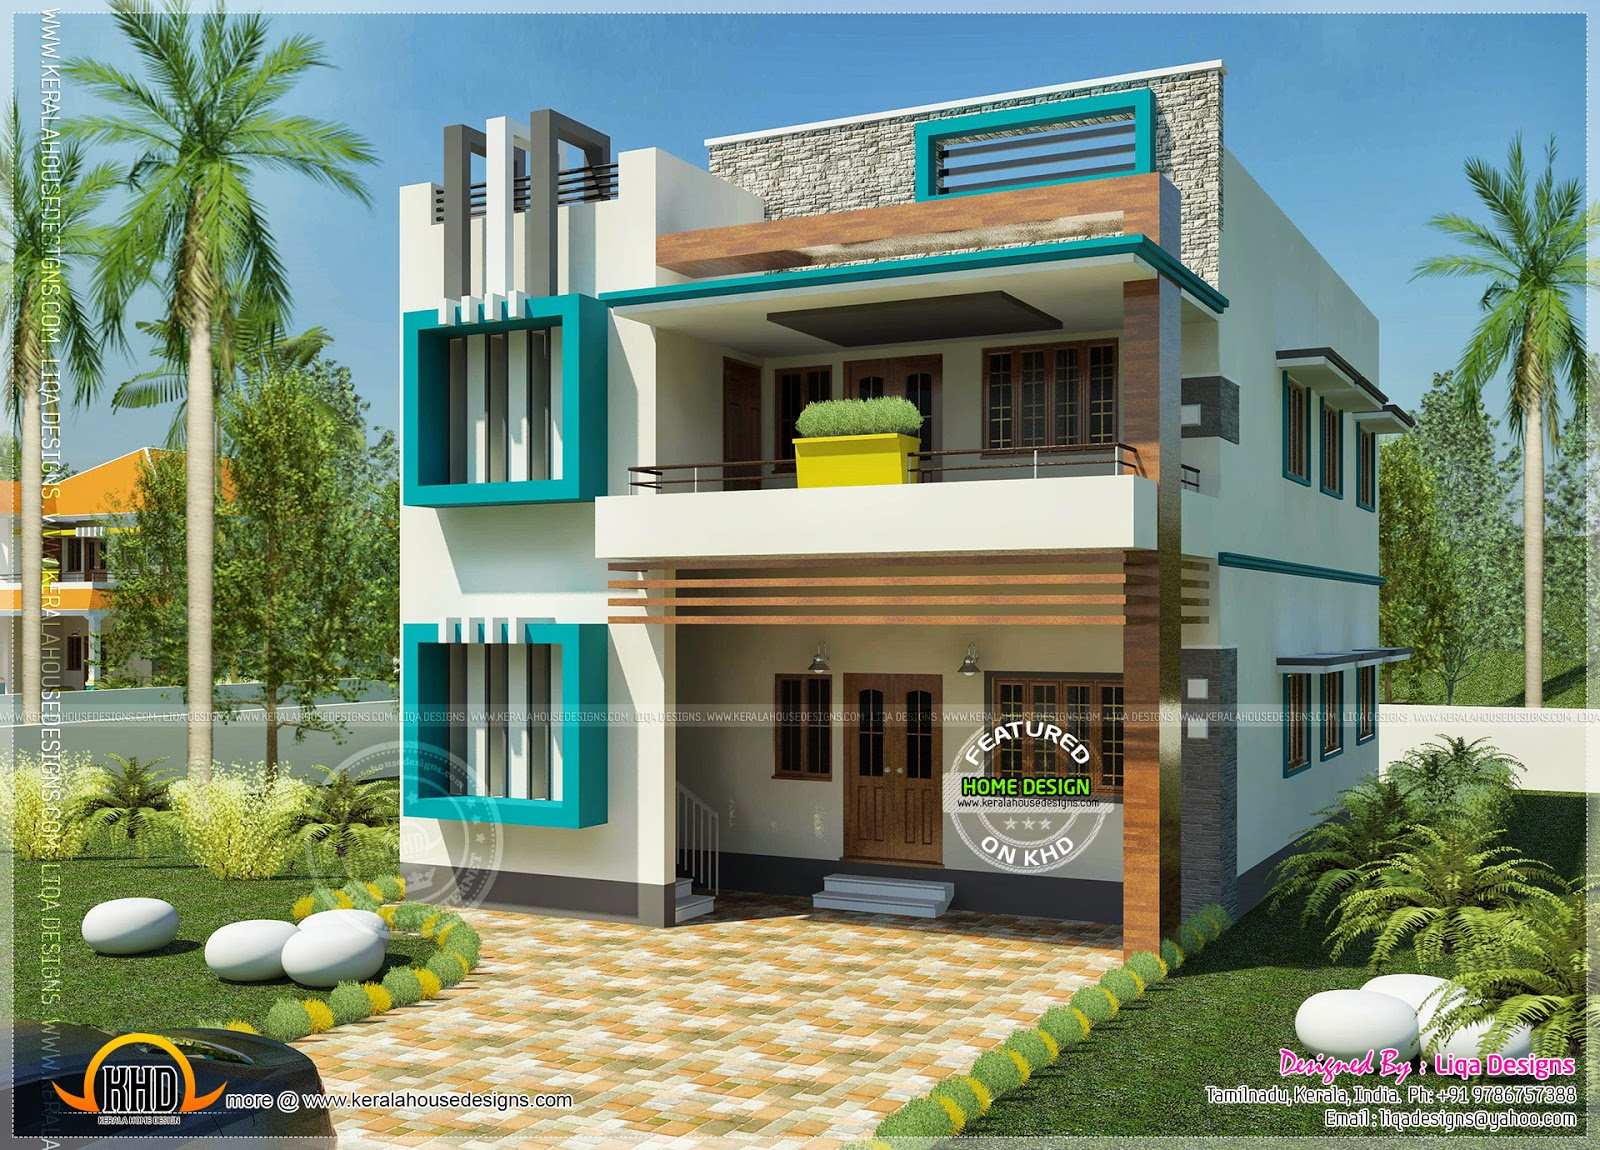 Stunning 4786 Ideas Simple House In India Modern Simple Home ... new simple home designs